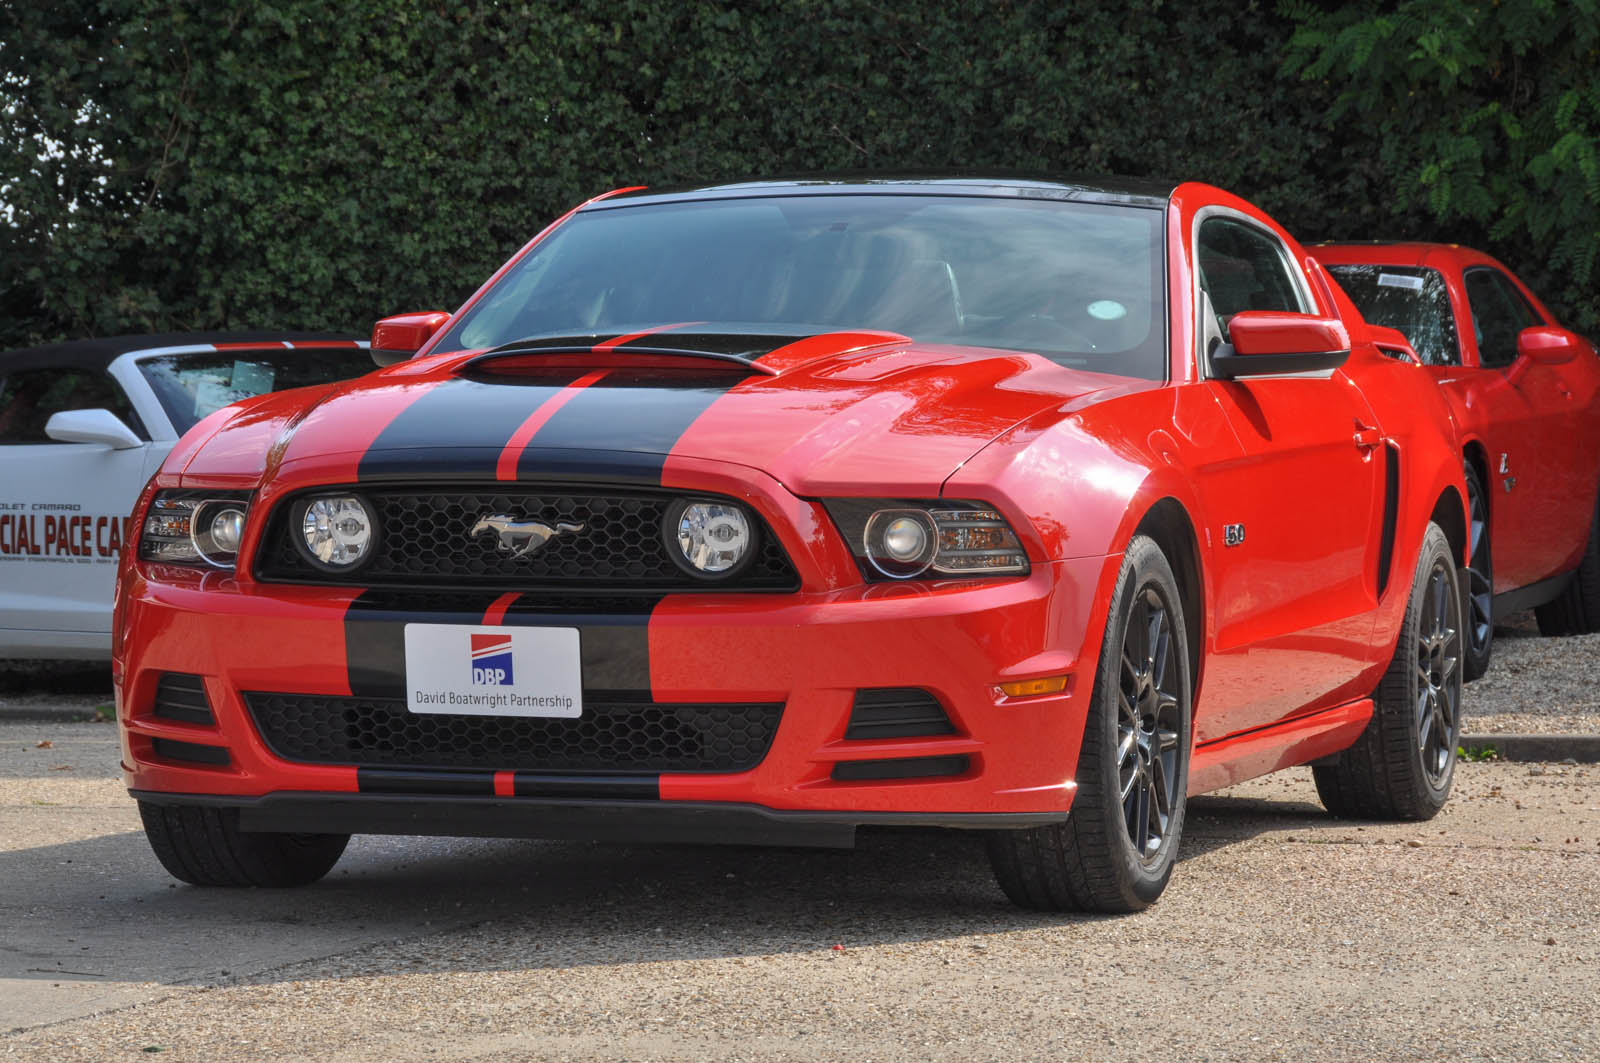 2014 ford mustang for sale in the uk gt 5 0 litre v8 auto. Black Bedroom Furniture Sets. Home Design Ideas